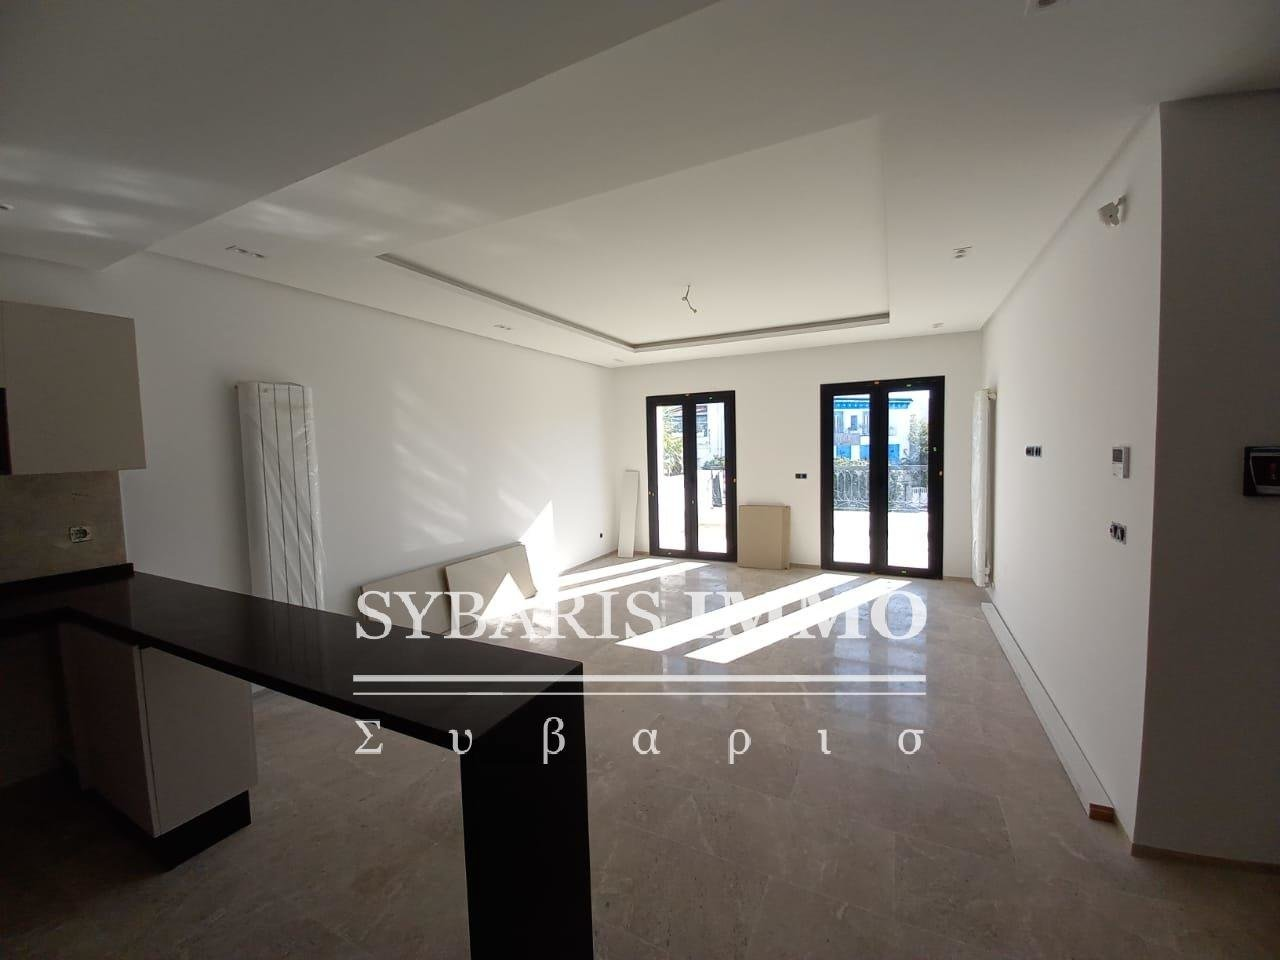 LOCATION APPARTEMENT HAUT STANDING - Tunisie